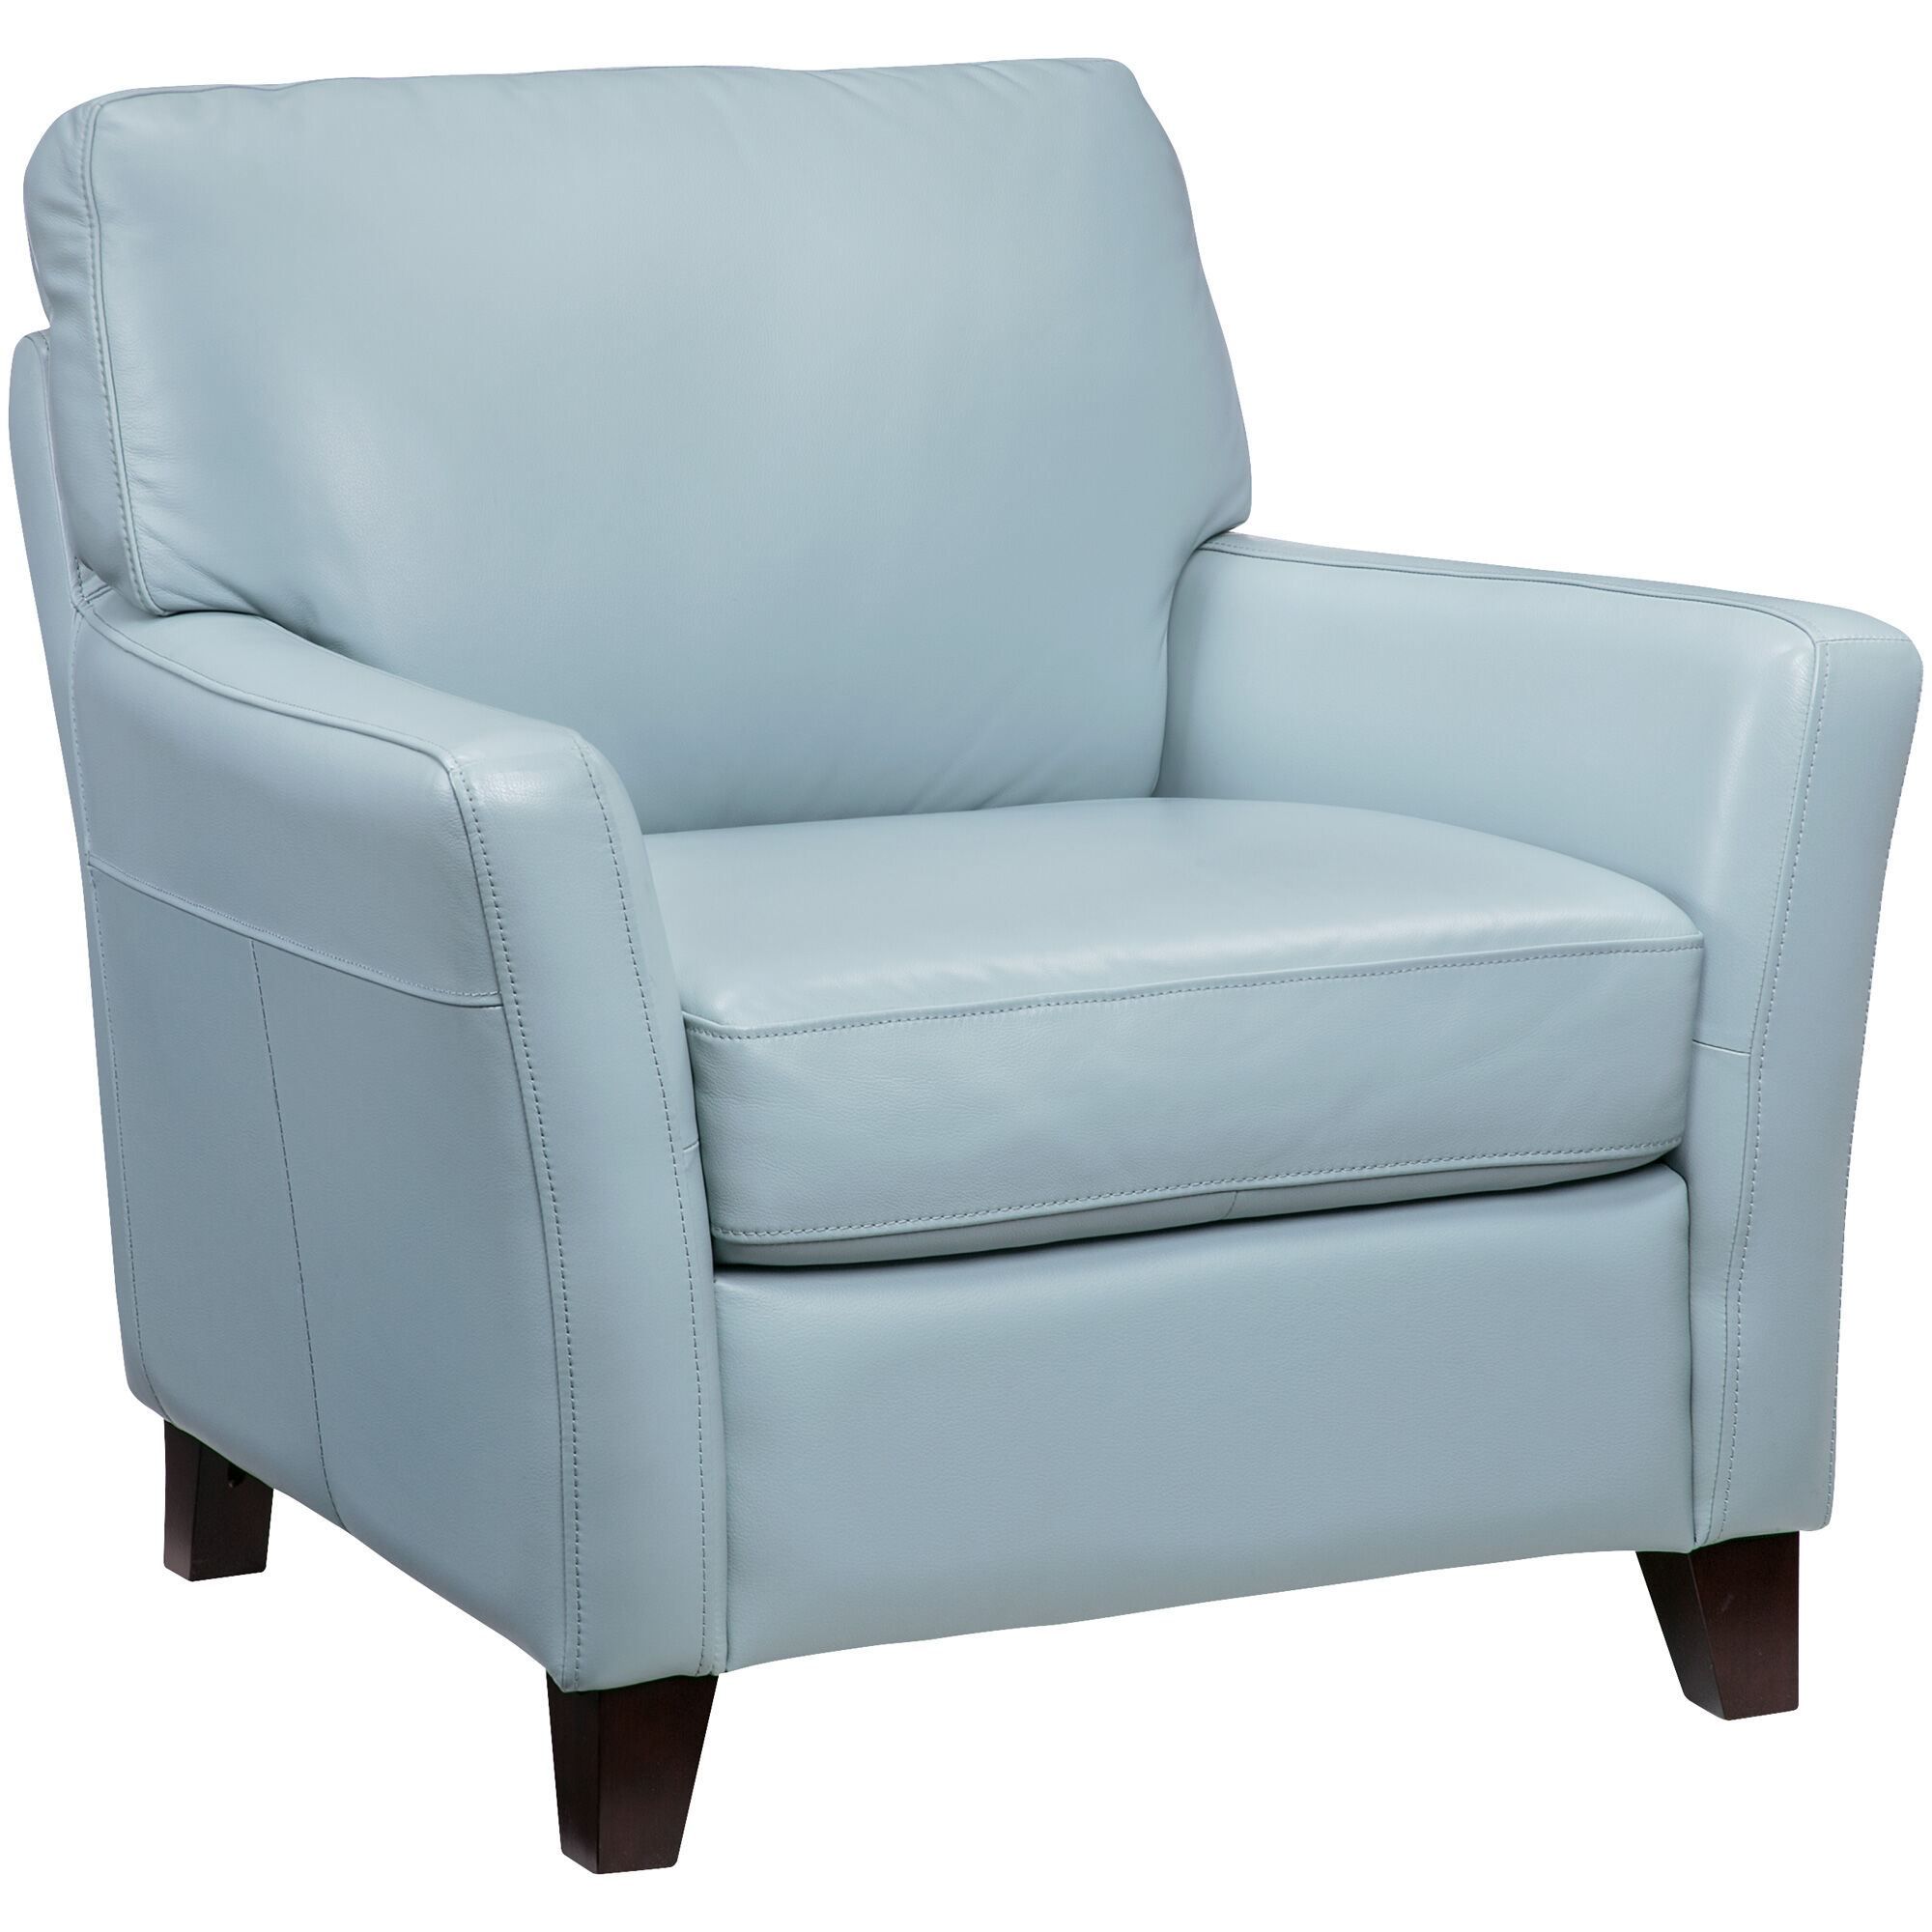 Low Price Accent Chairs